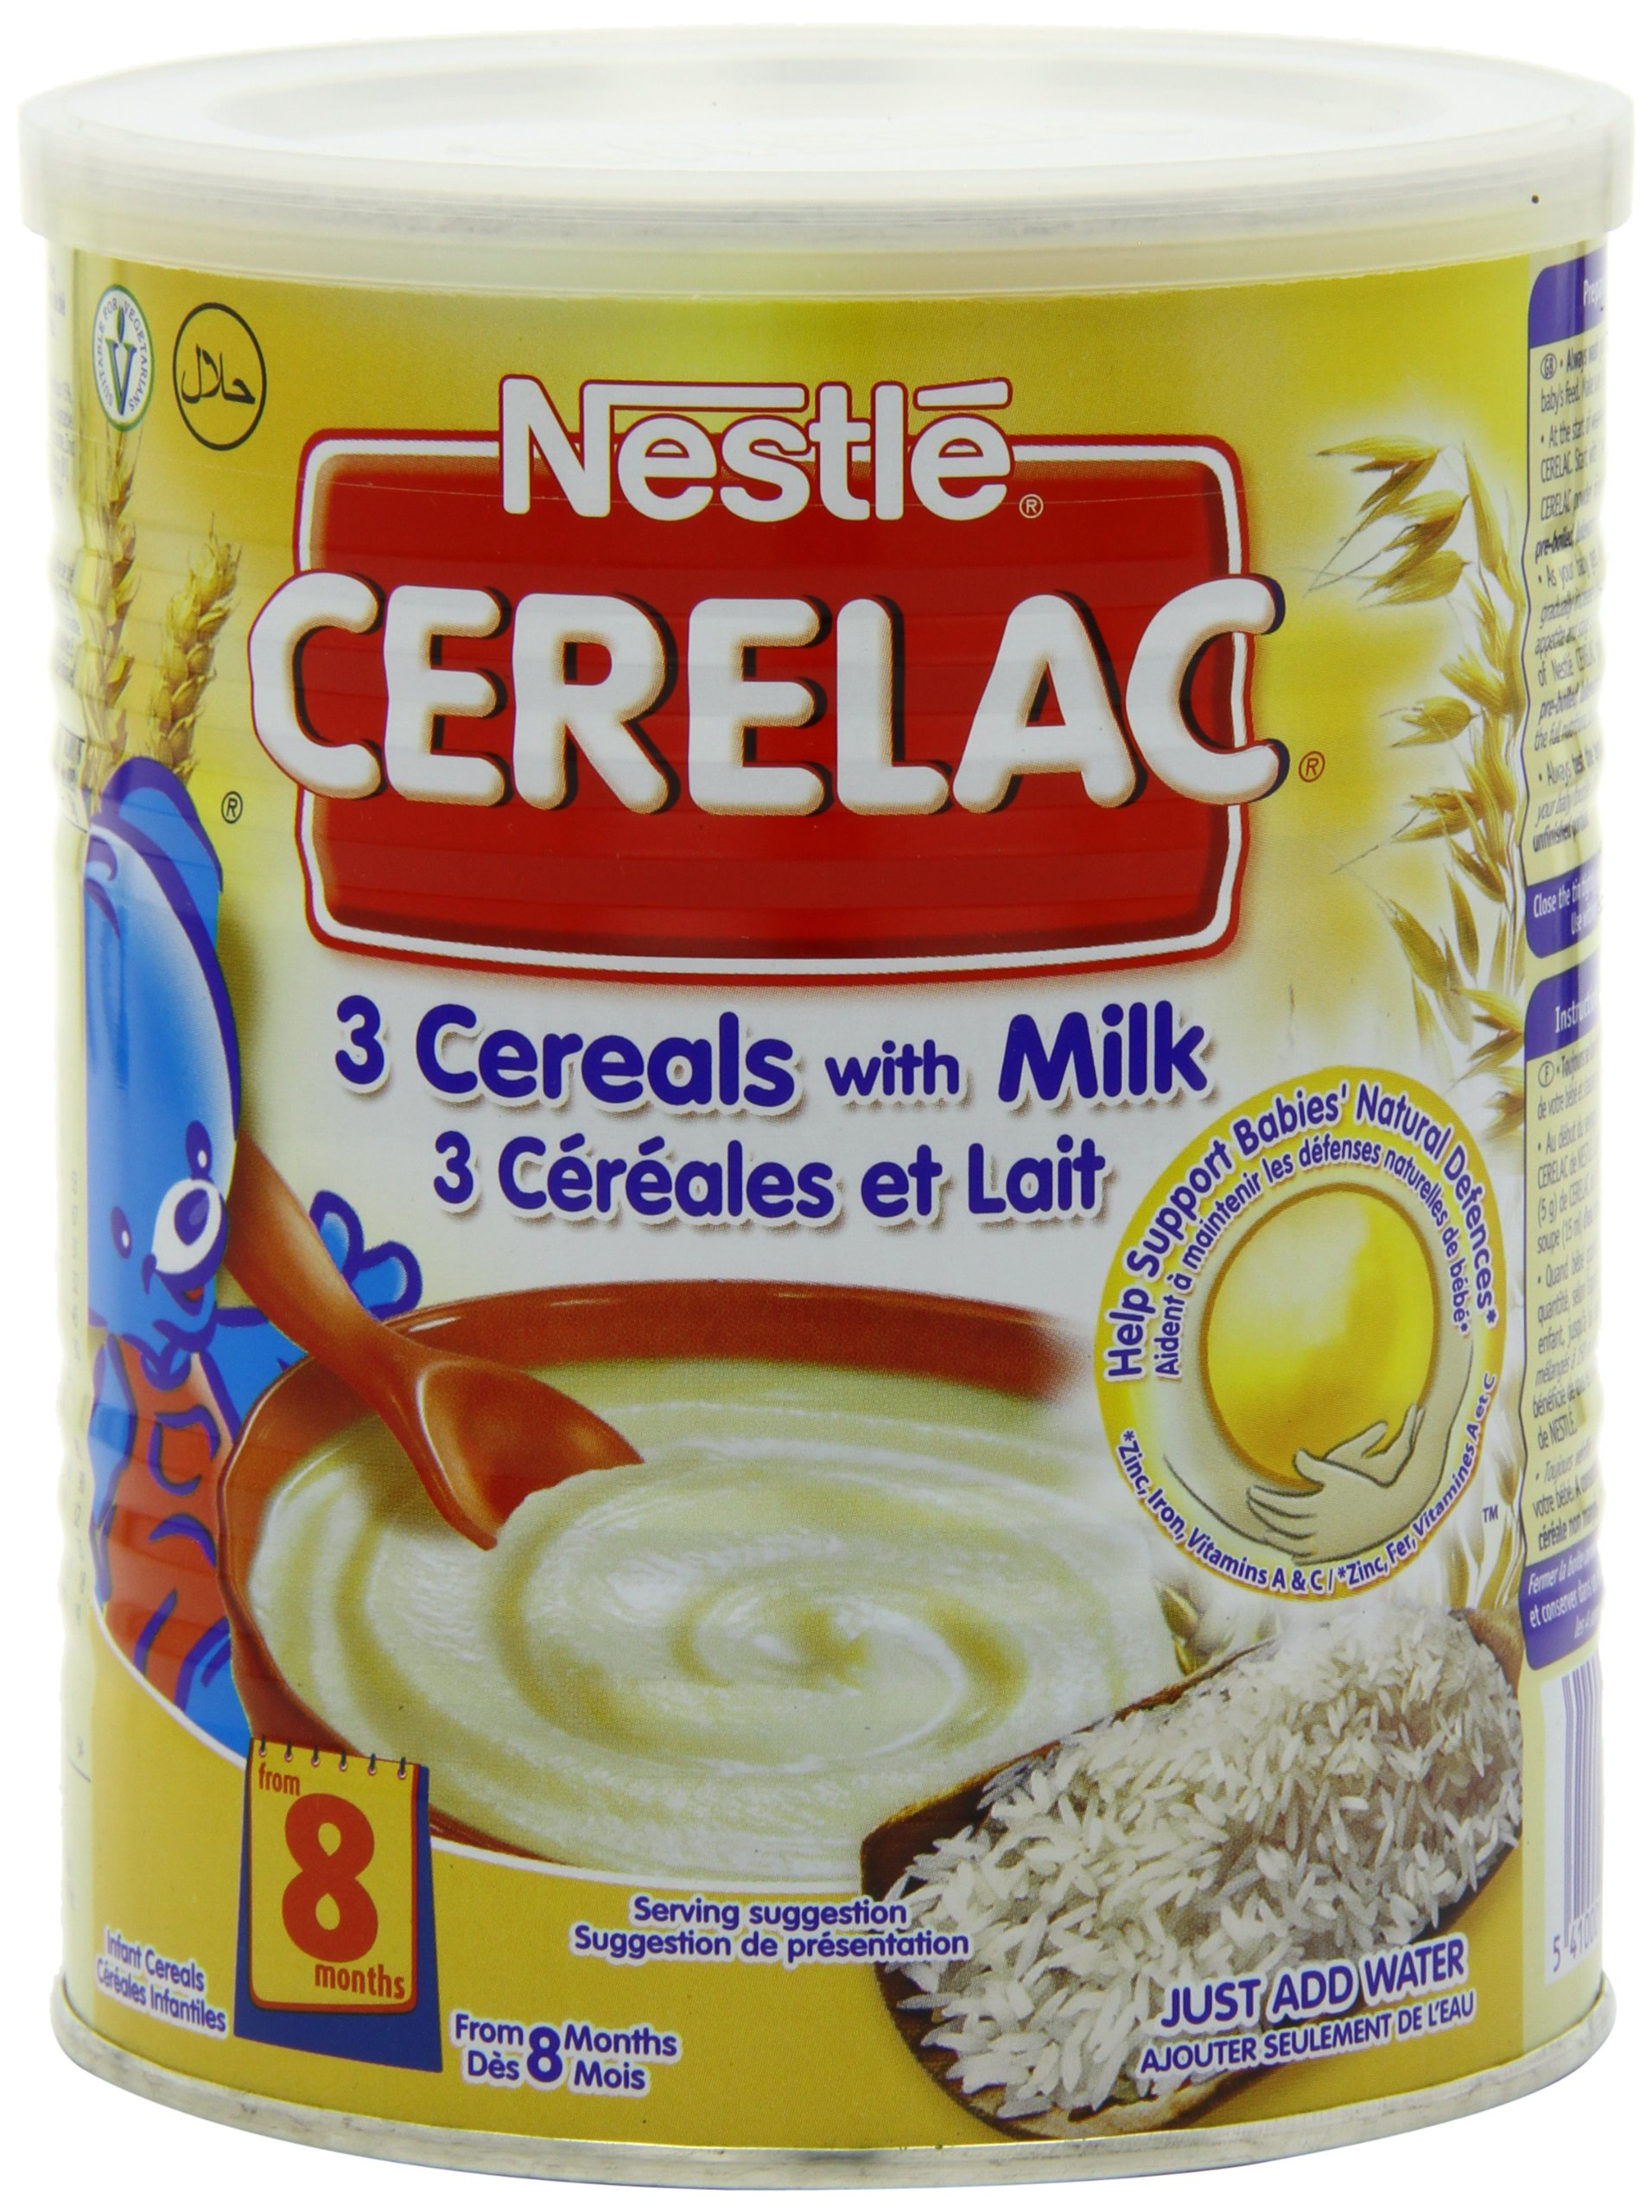 Nestle Cerelac 3 Cereals With Milk, 400 Gram Can (Pack of 4) by Nestle